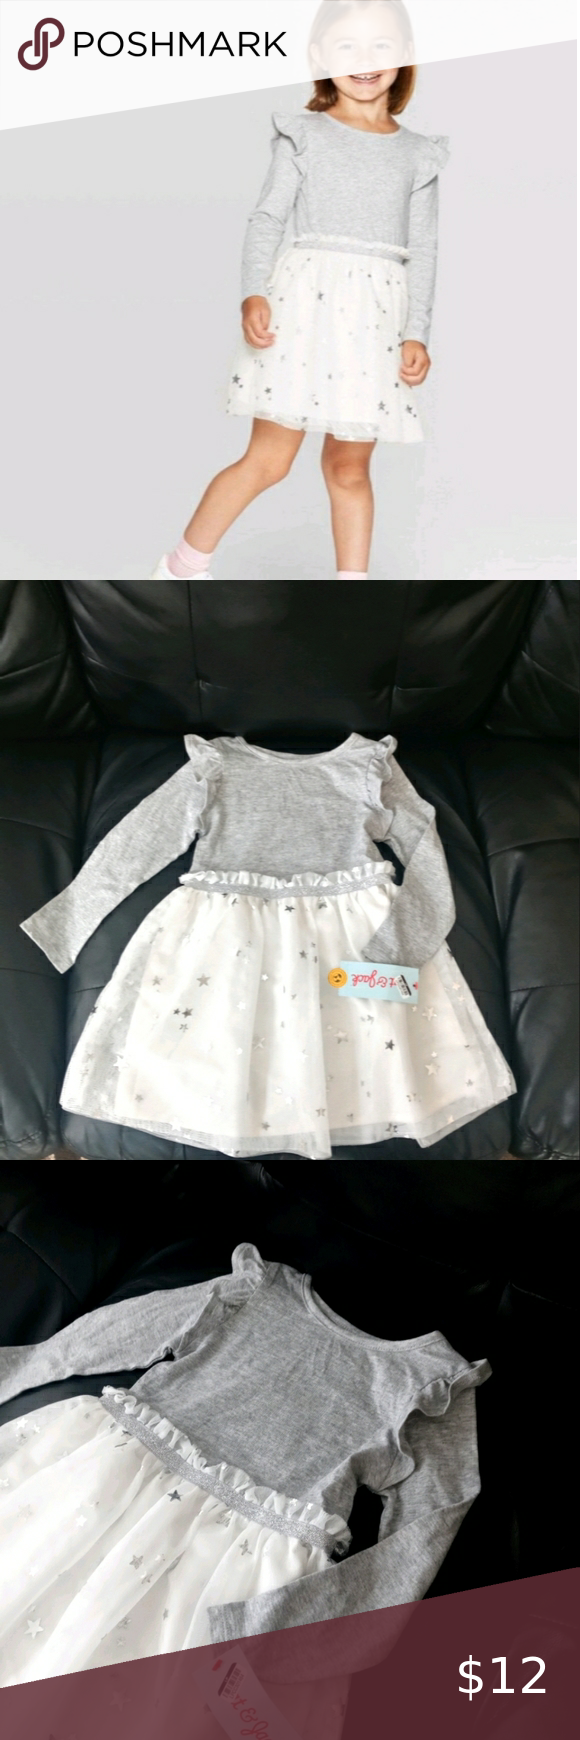 Cat Jack Toddler Girls Tutu Dress Wd2 This Cute Toddler Gray White And Silver Tutu Dress Is Brand New Girls Knitted Dress Girls Tutu Dresses Tutus For Girls [ 1740 x 580 Pixel ]